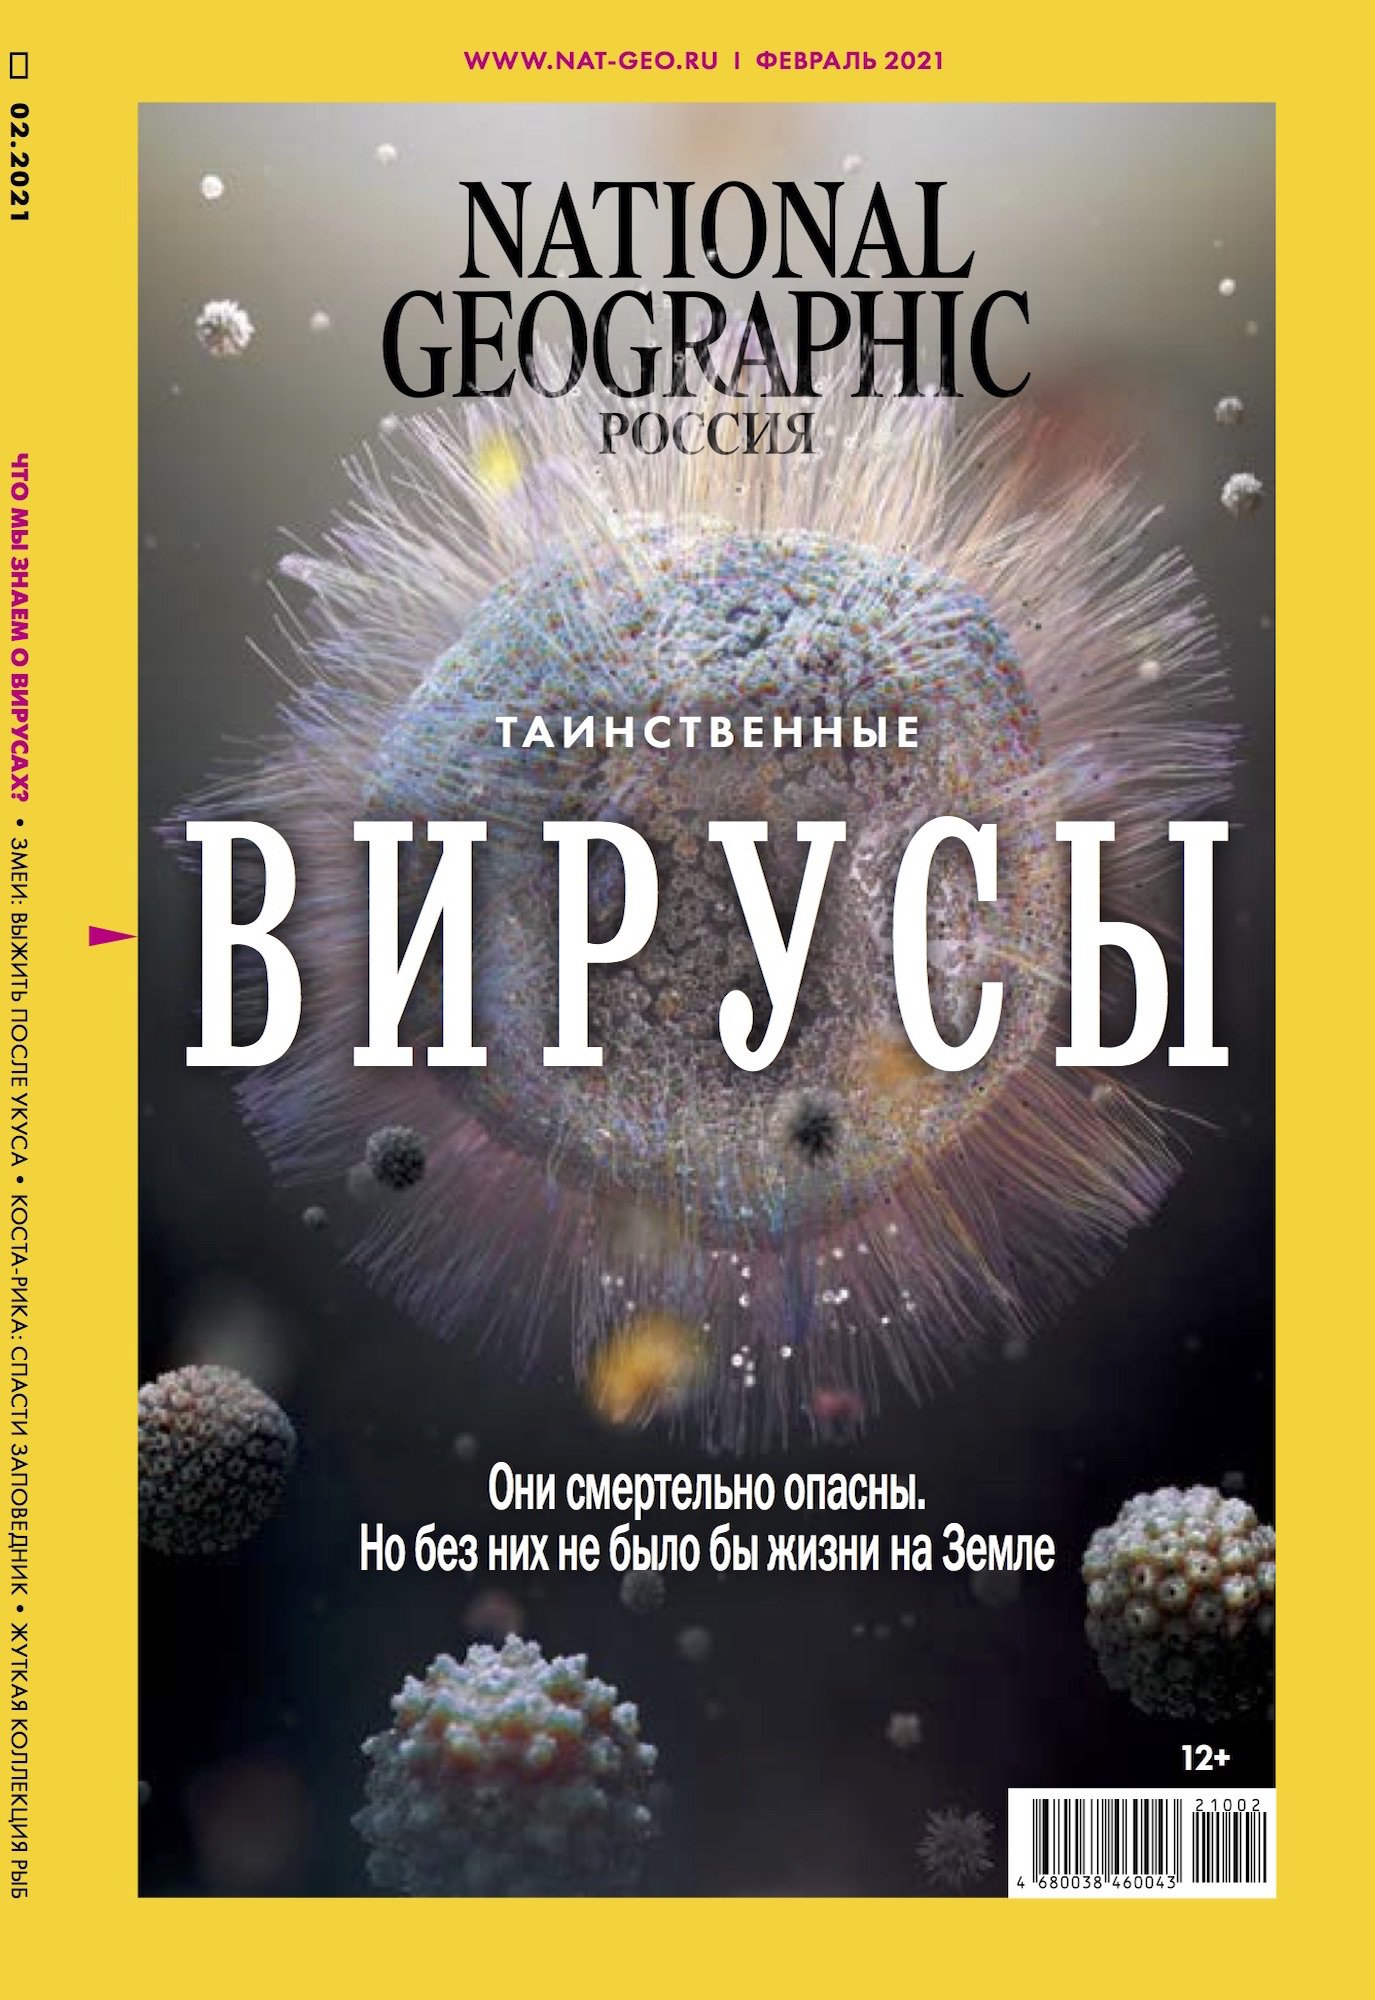 National Geographic Россия №206, февраль